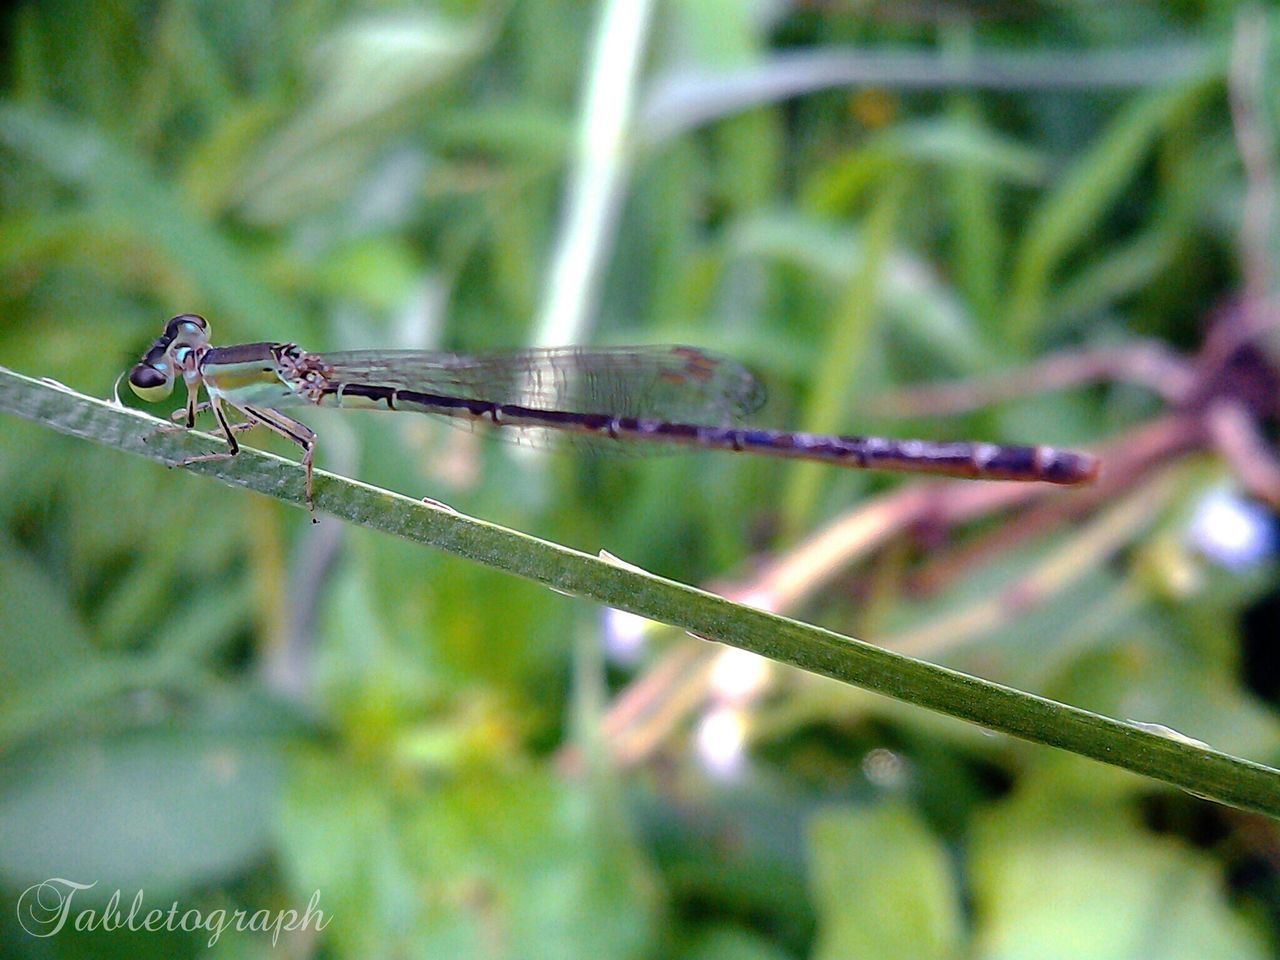 insect, animal themes, animals in the wild, focus on foreground, one animal, damselfly, day, no people, nature, outdoors, animal wildlife, close-up, plant, grass